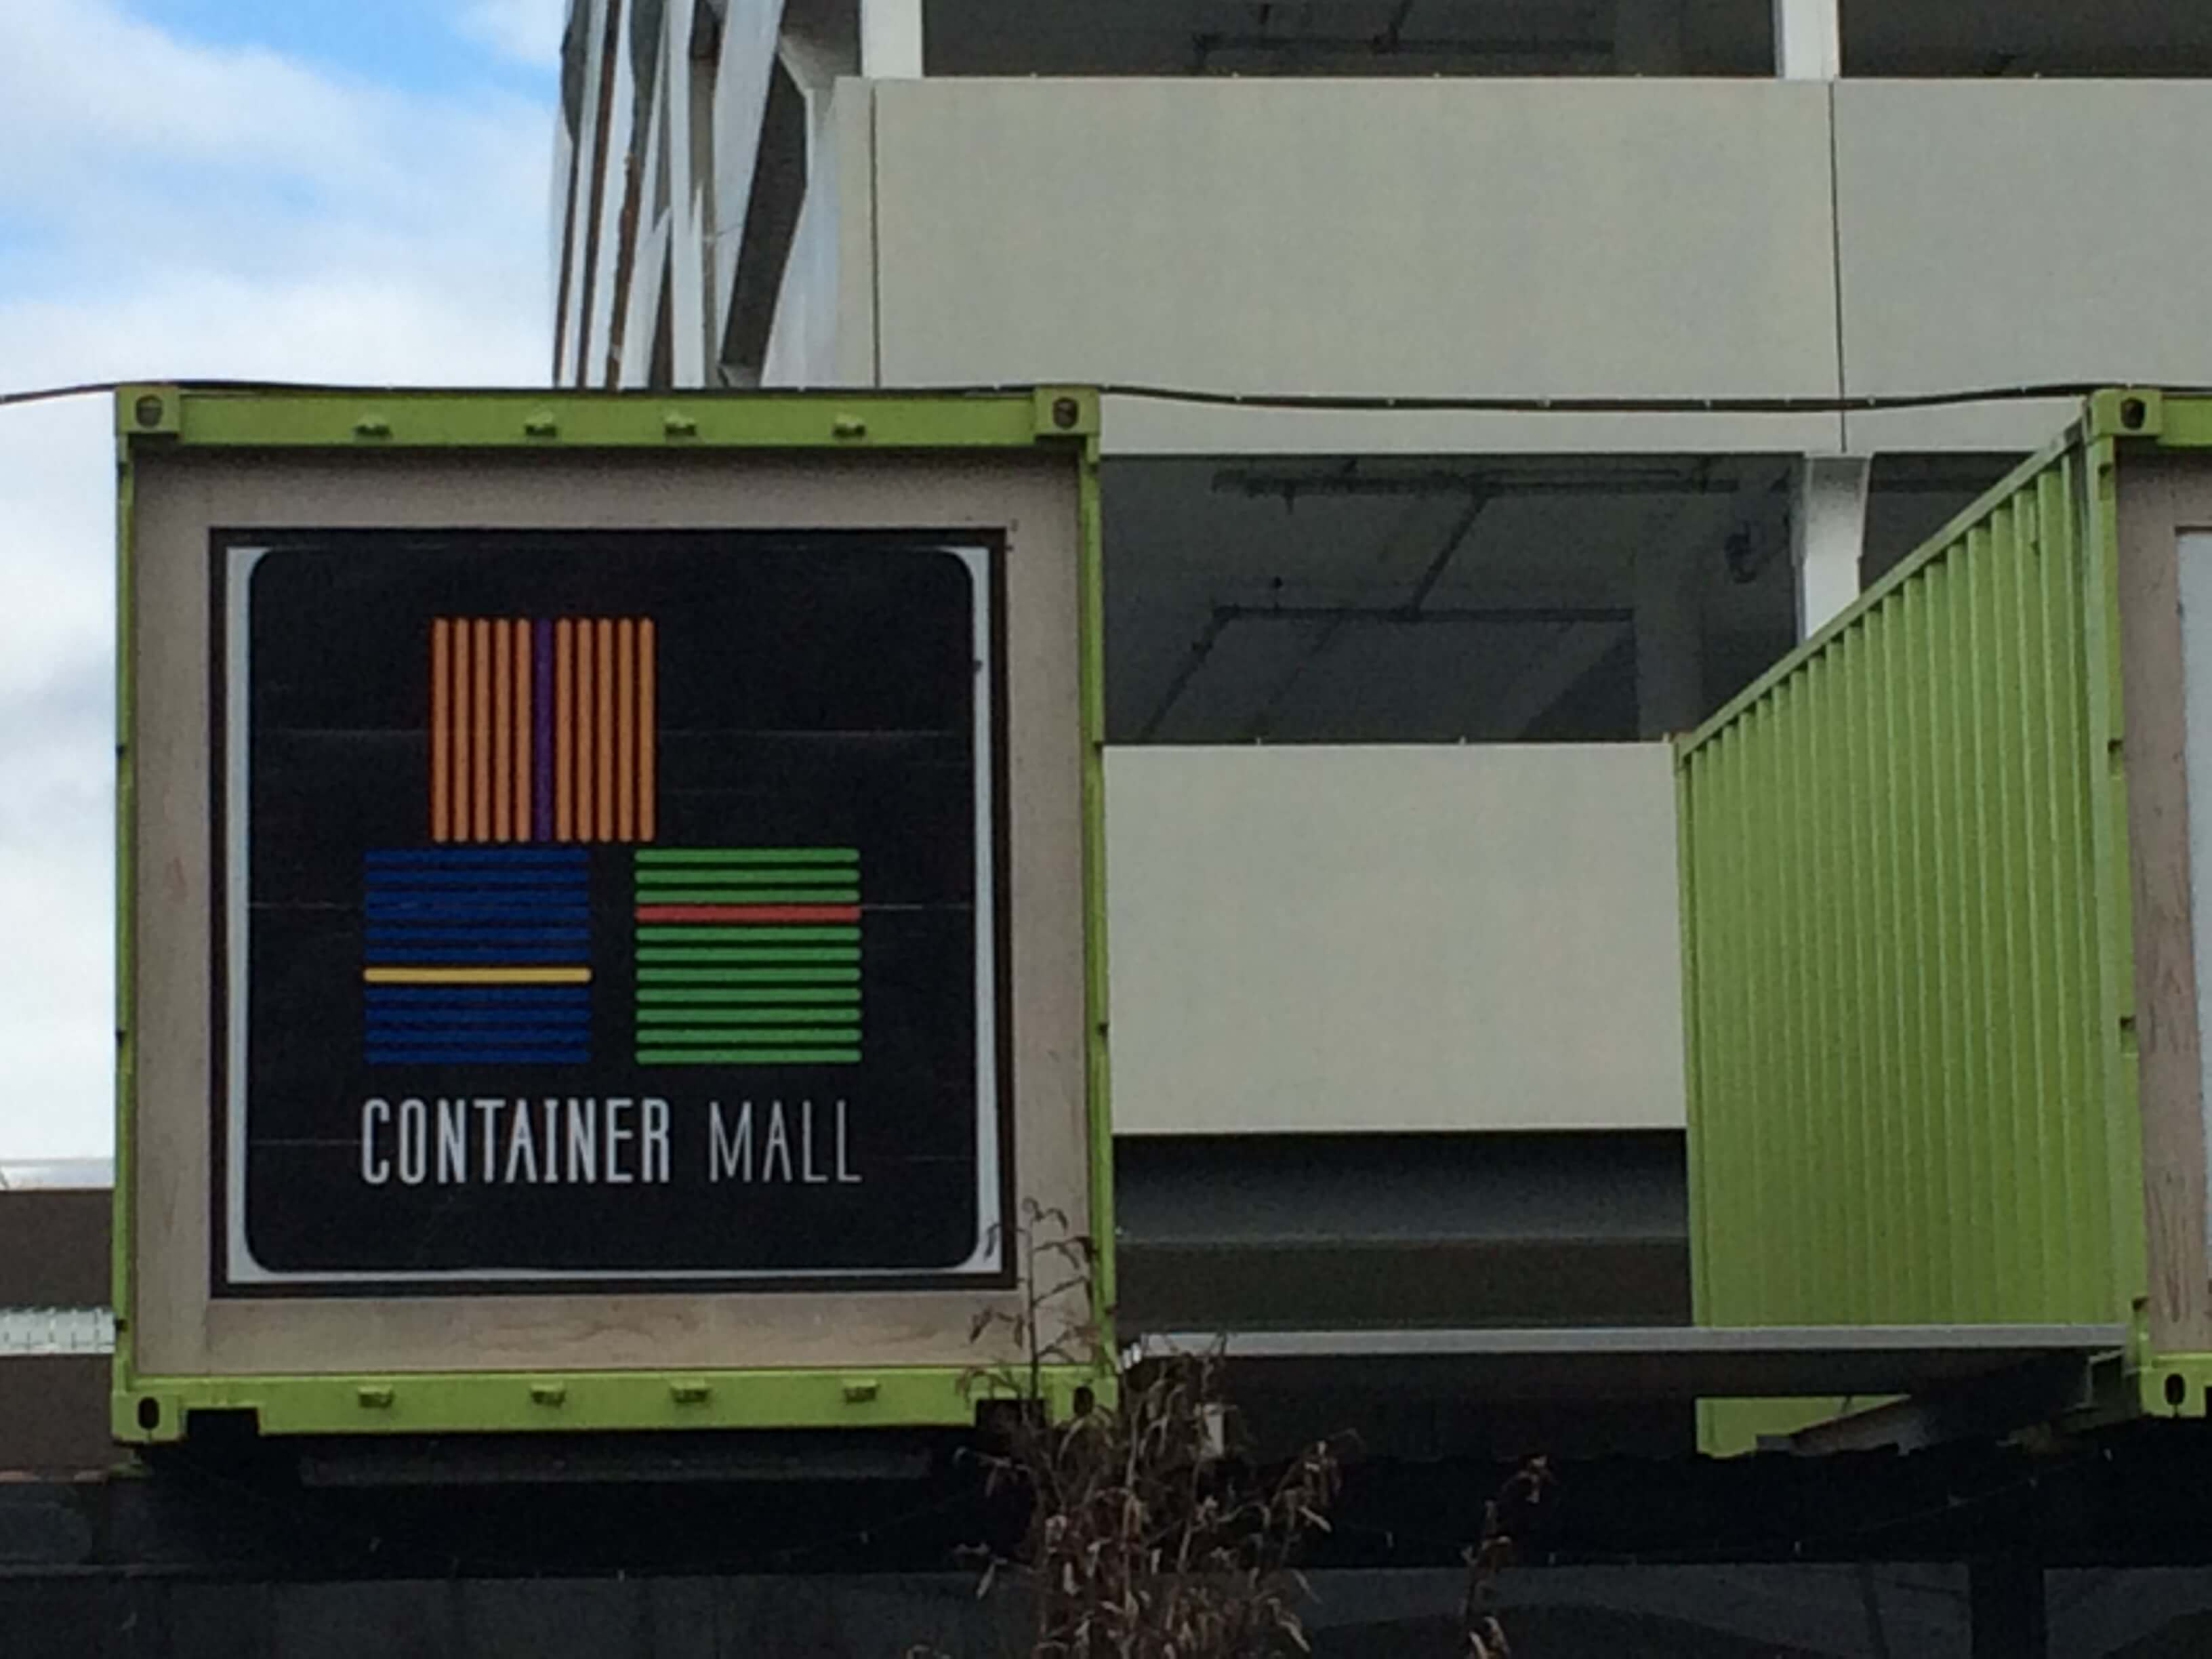 Container Mall